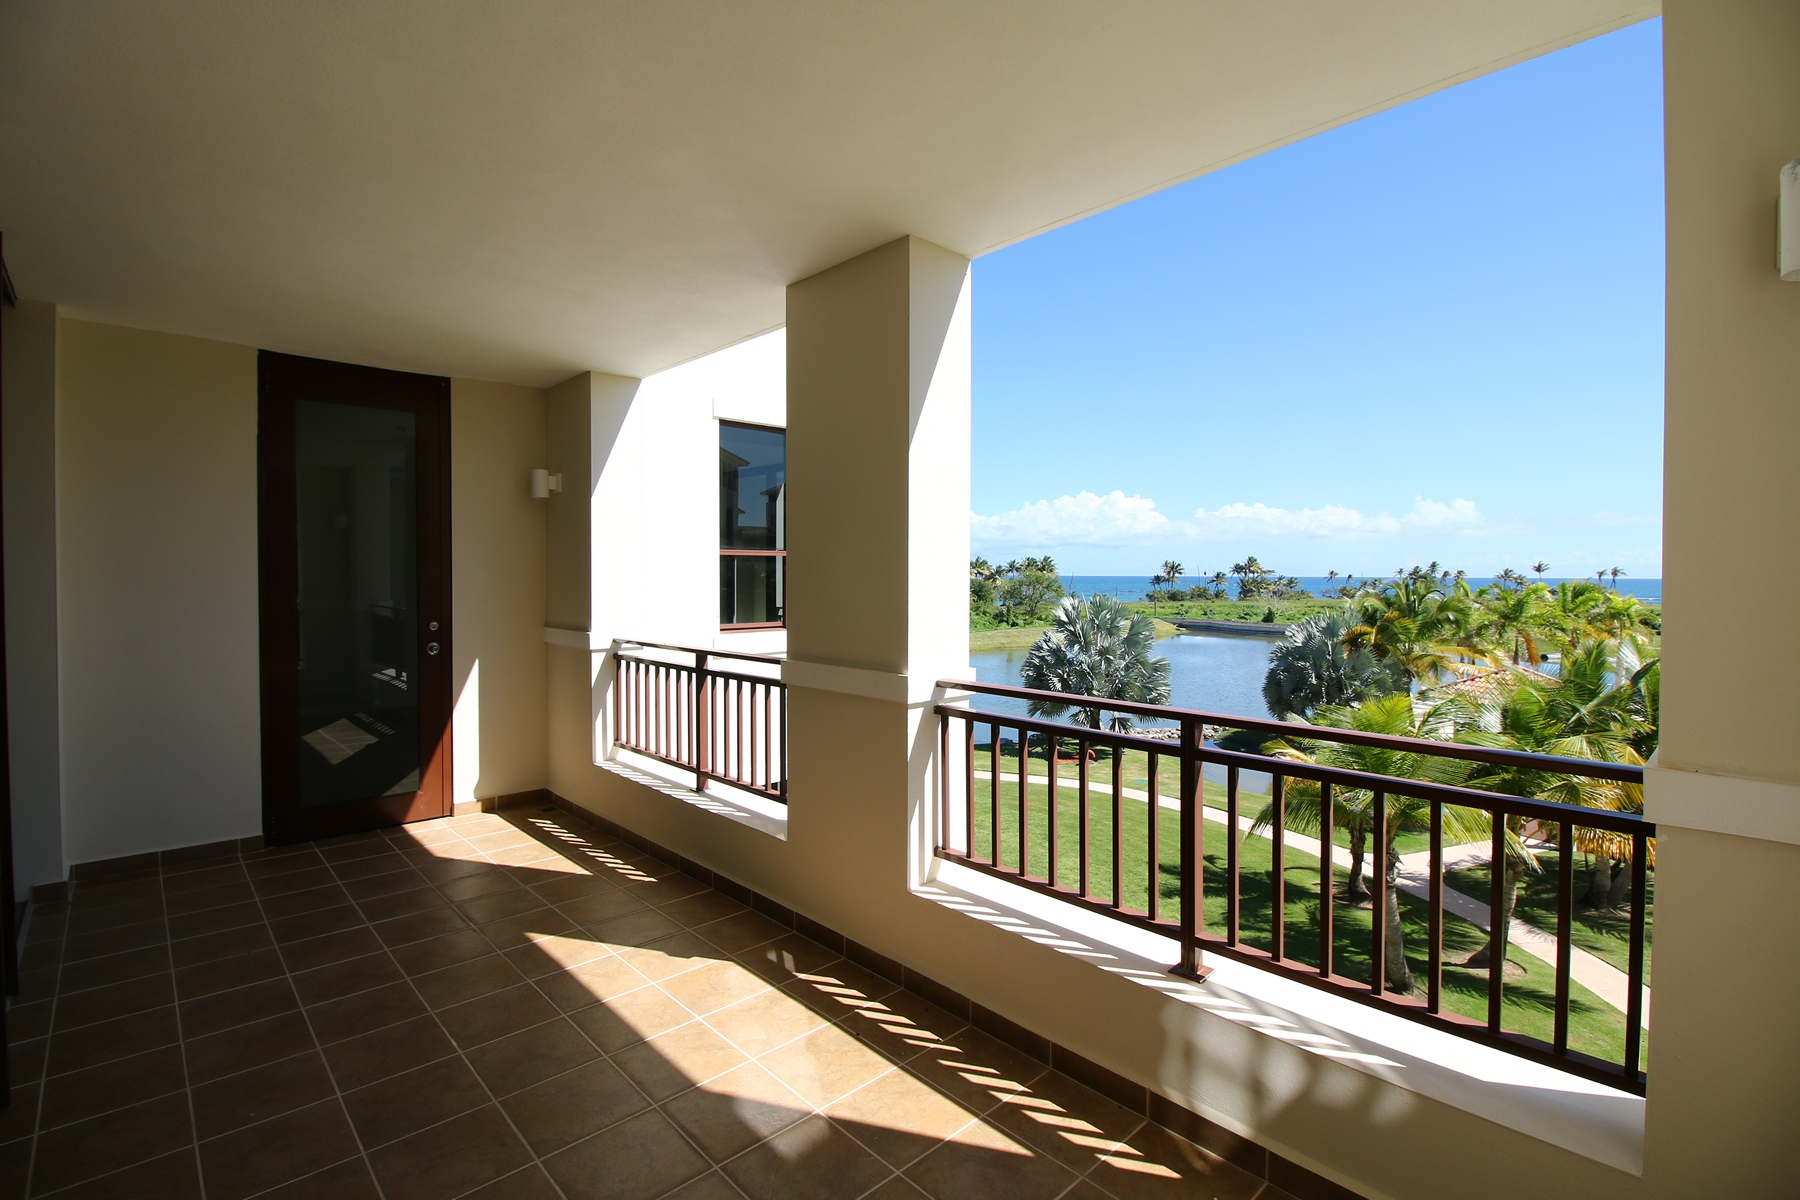 Additional photo for property listing at Residence 221 at 238 Candelero Drive 238 Candelero Drive, Apt 221 Solarea Beach Resort and Yacht Club Palmas Del Mar, Puerto Rico 00791 Porto Rico